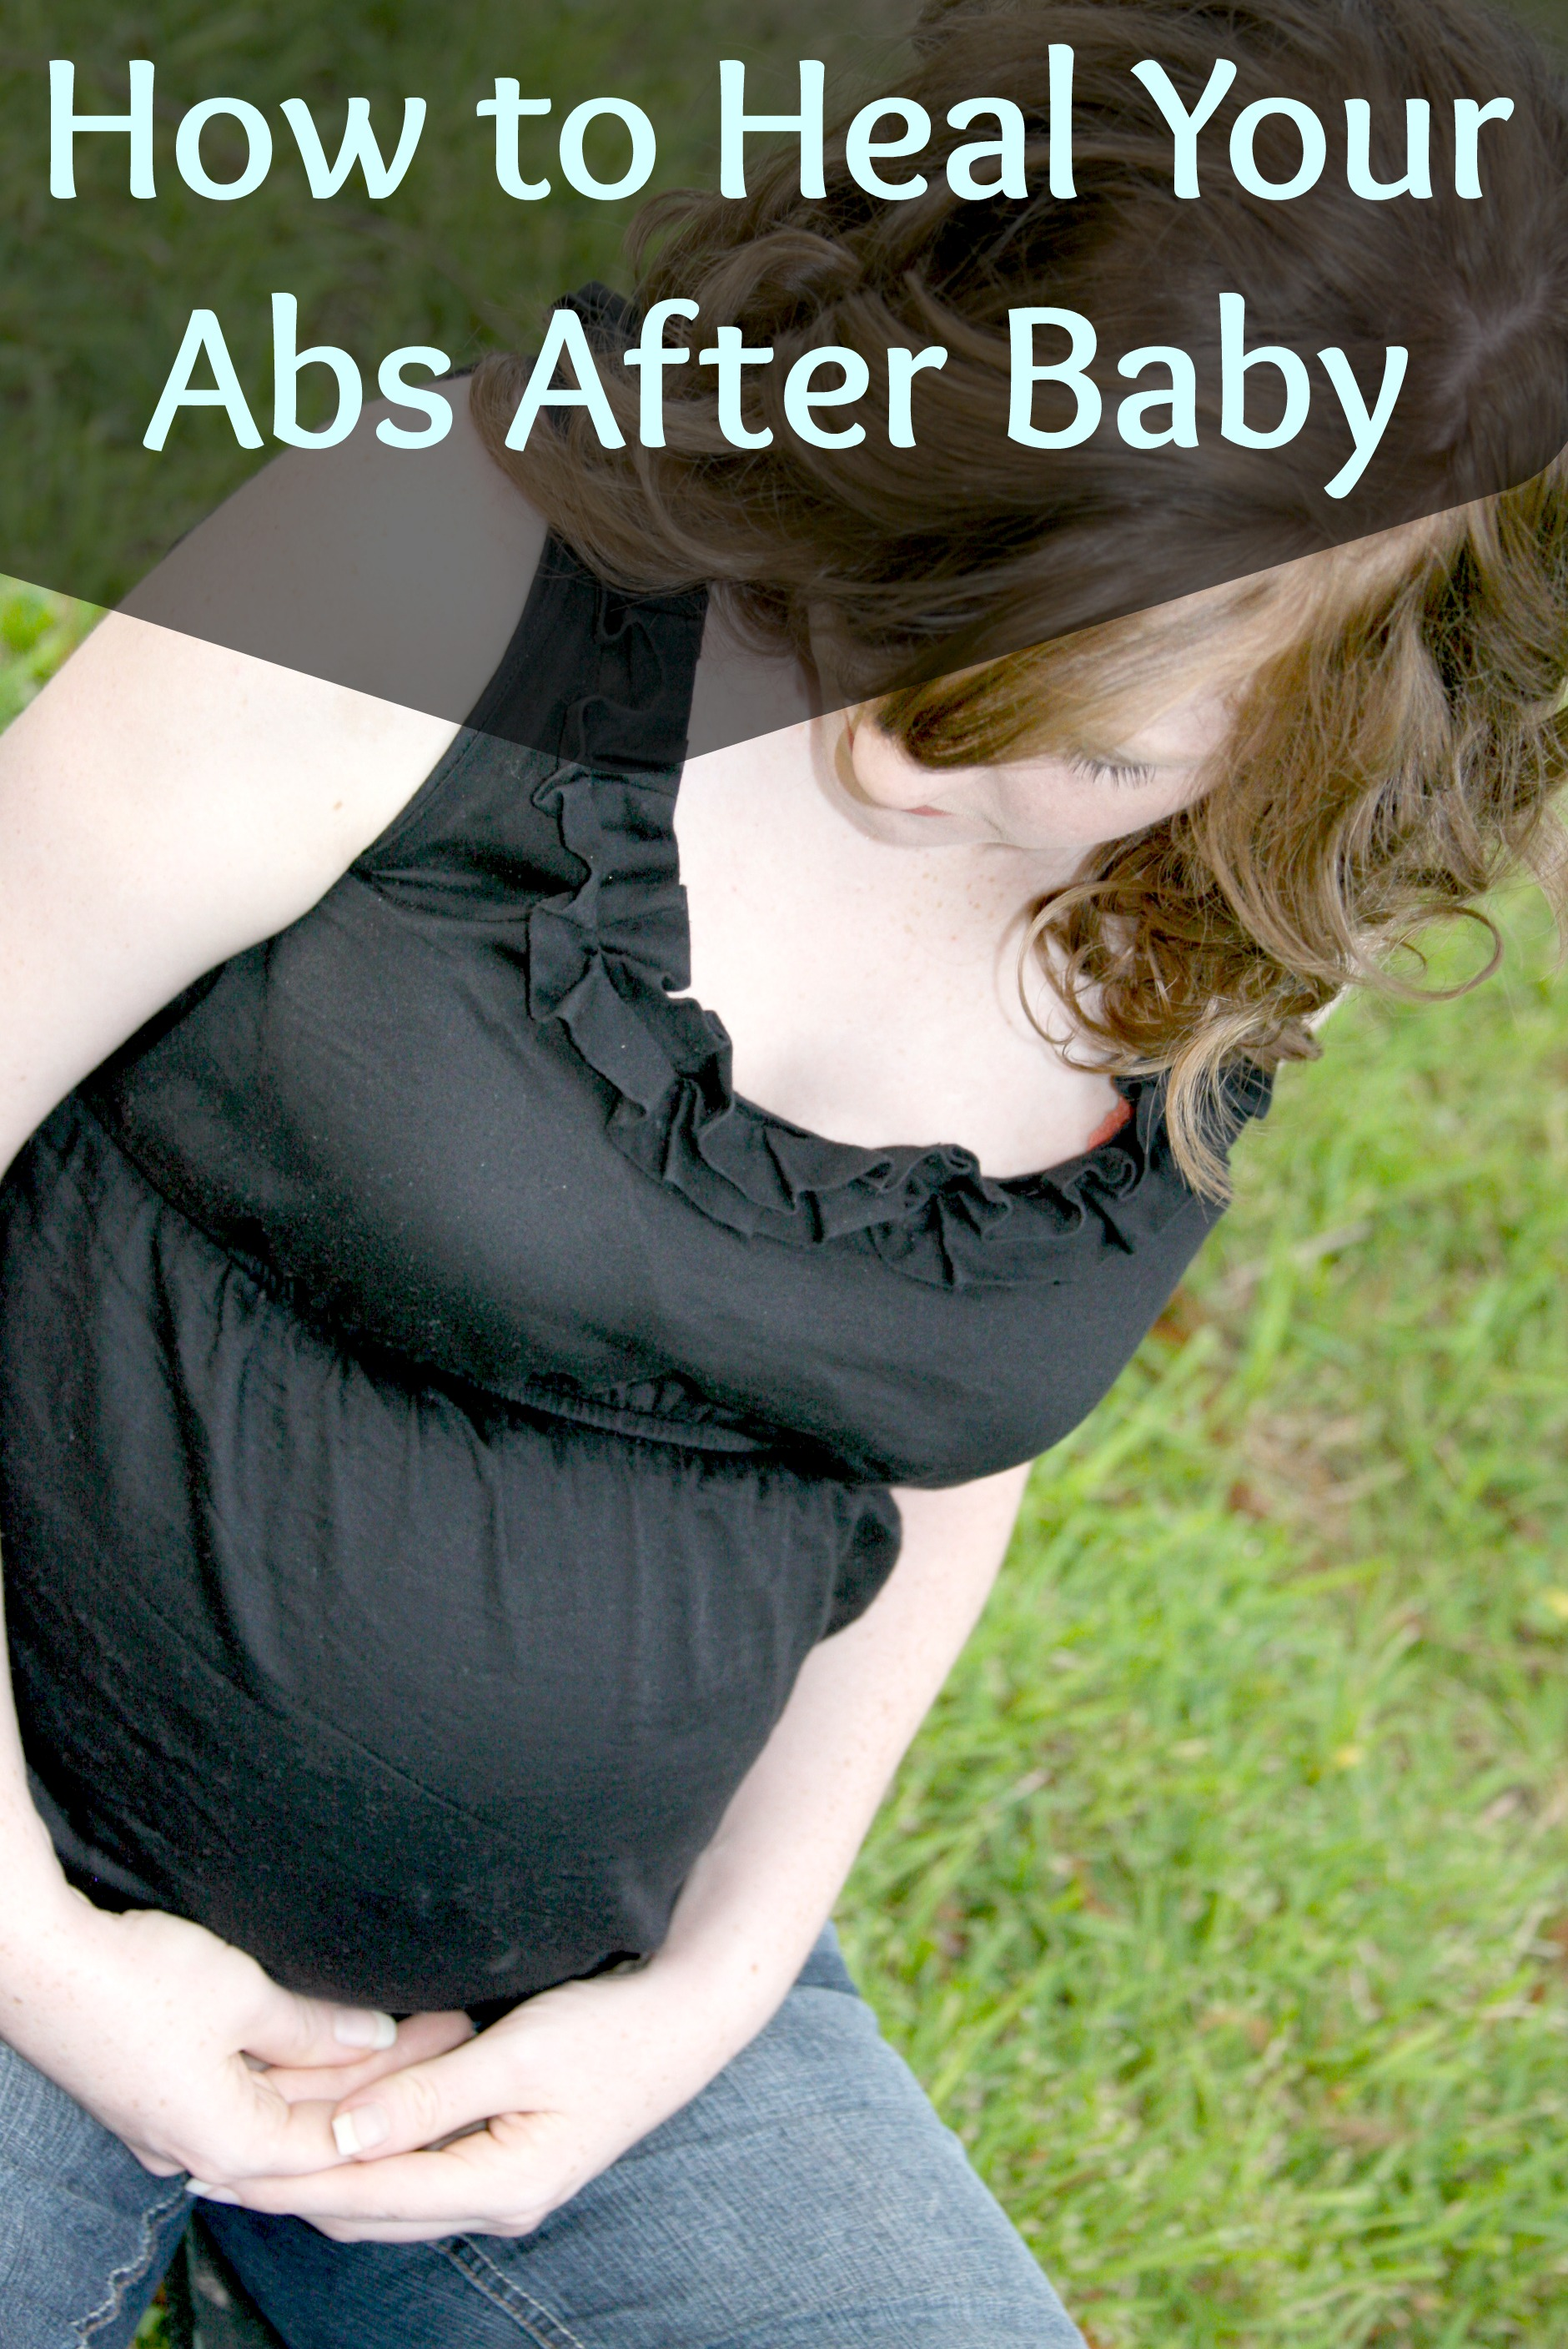 How to Heal Diastasis Recti - Grassfed Mama